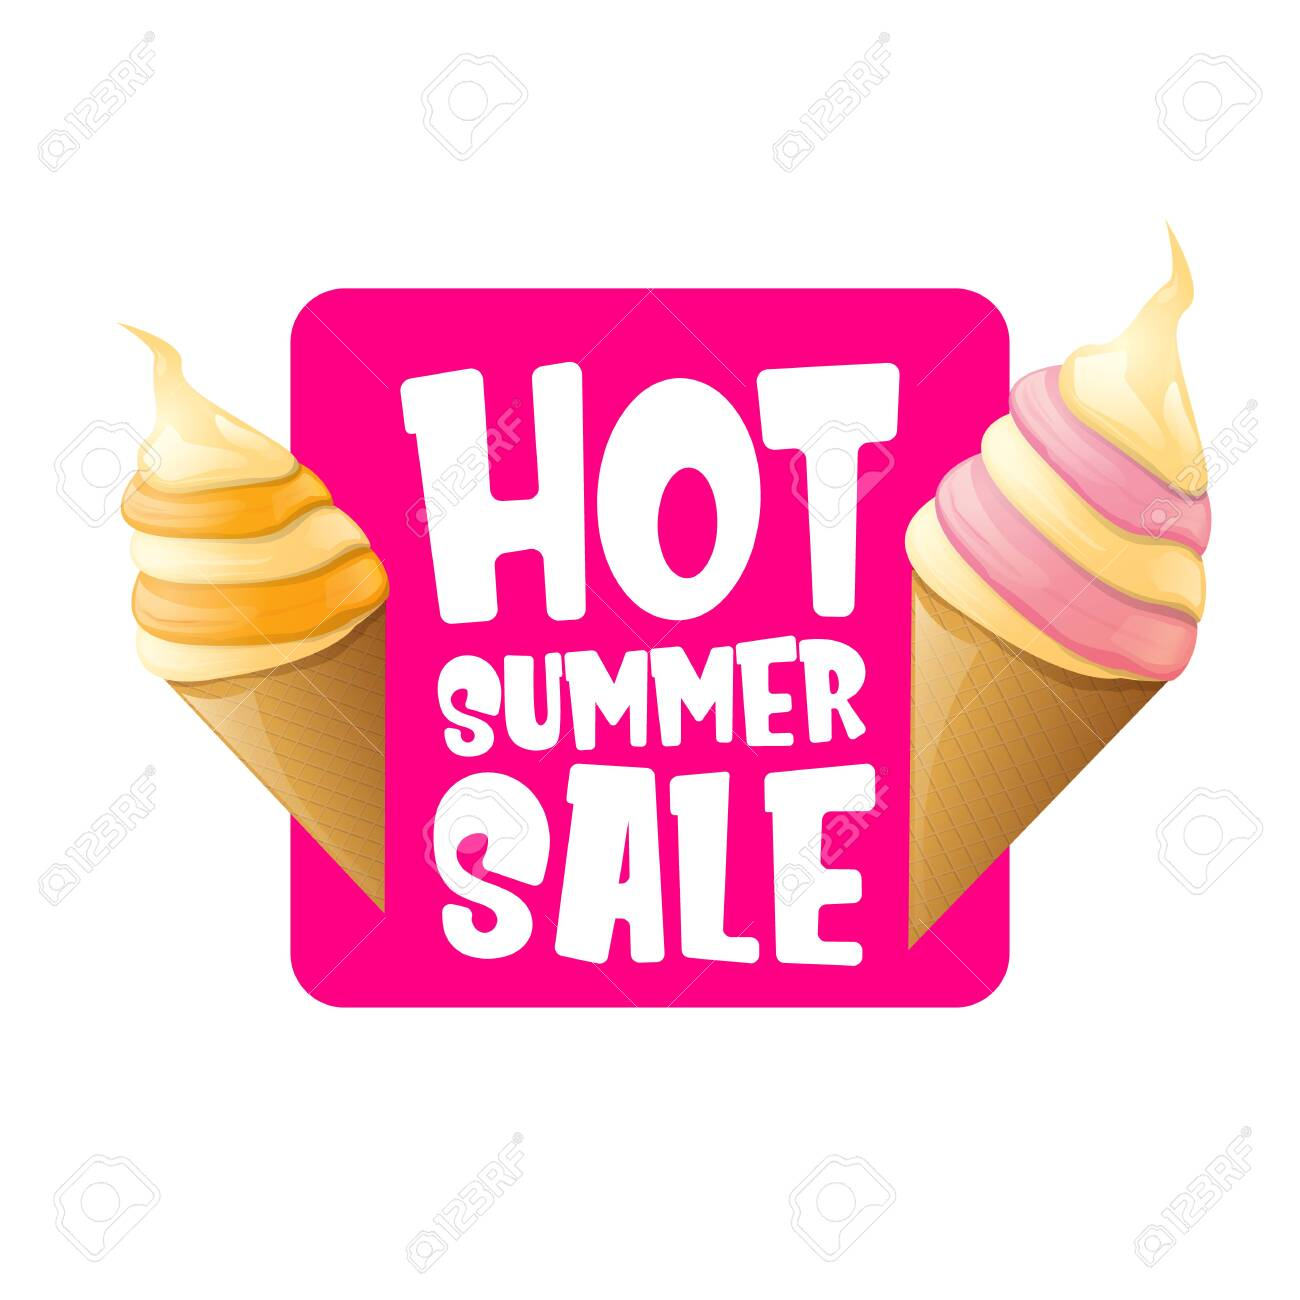 hot summer sale label or tag with melting ice cream. Vector hot summer sale pink banner or icon. - 124824198